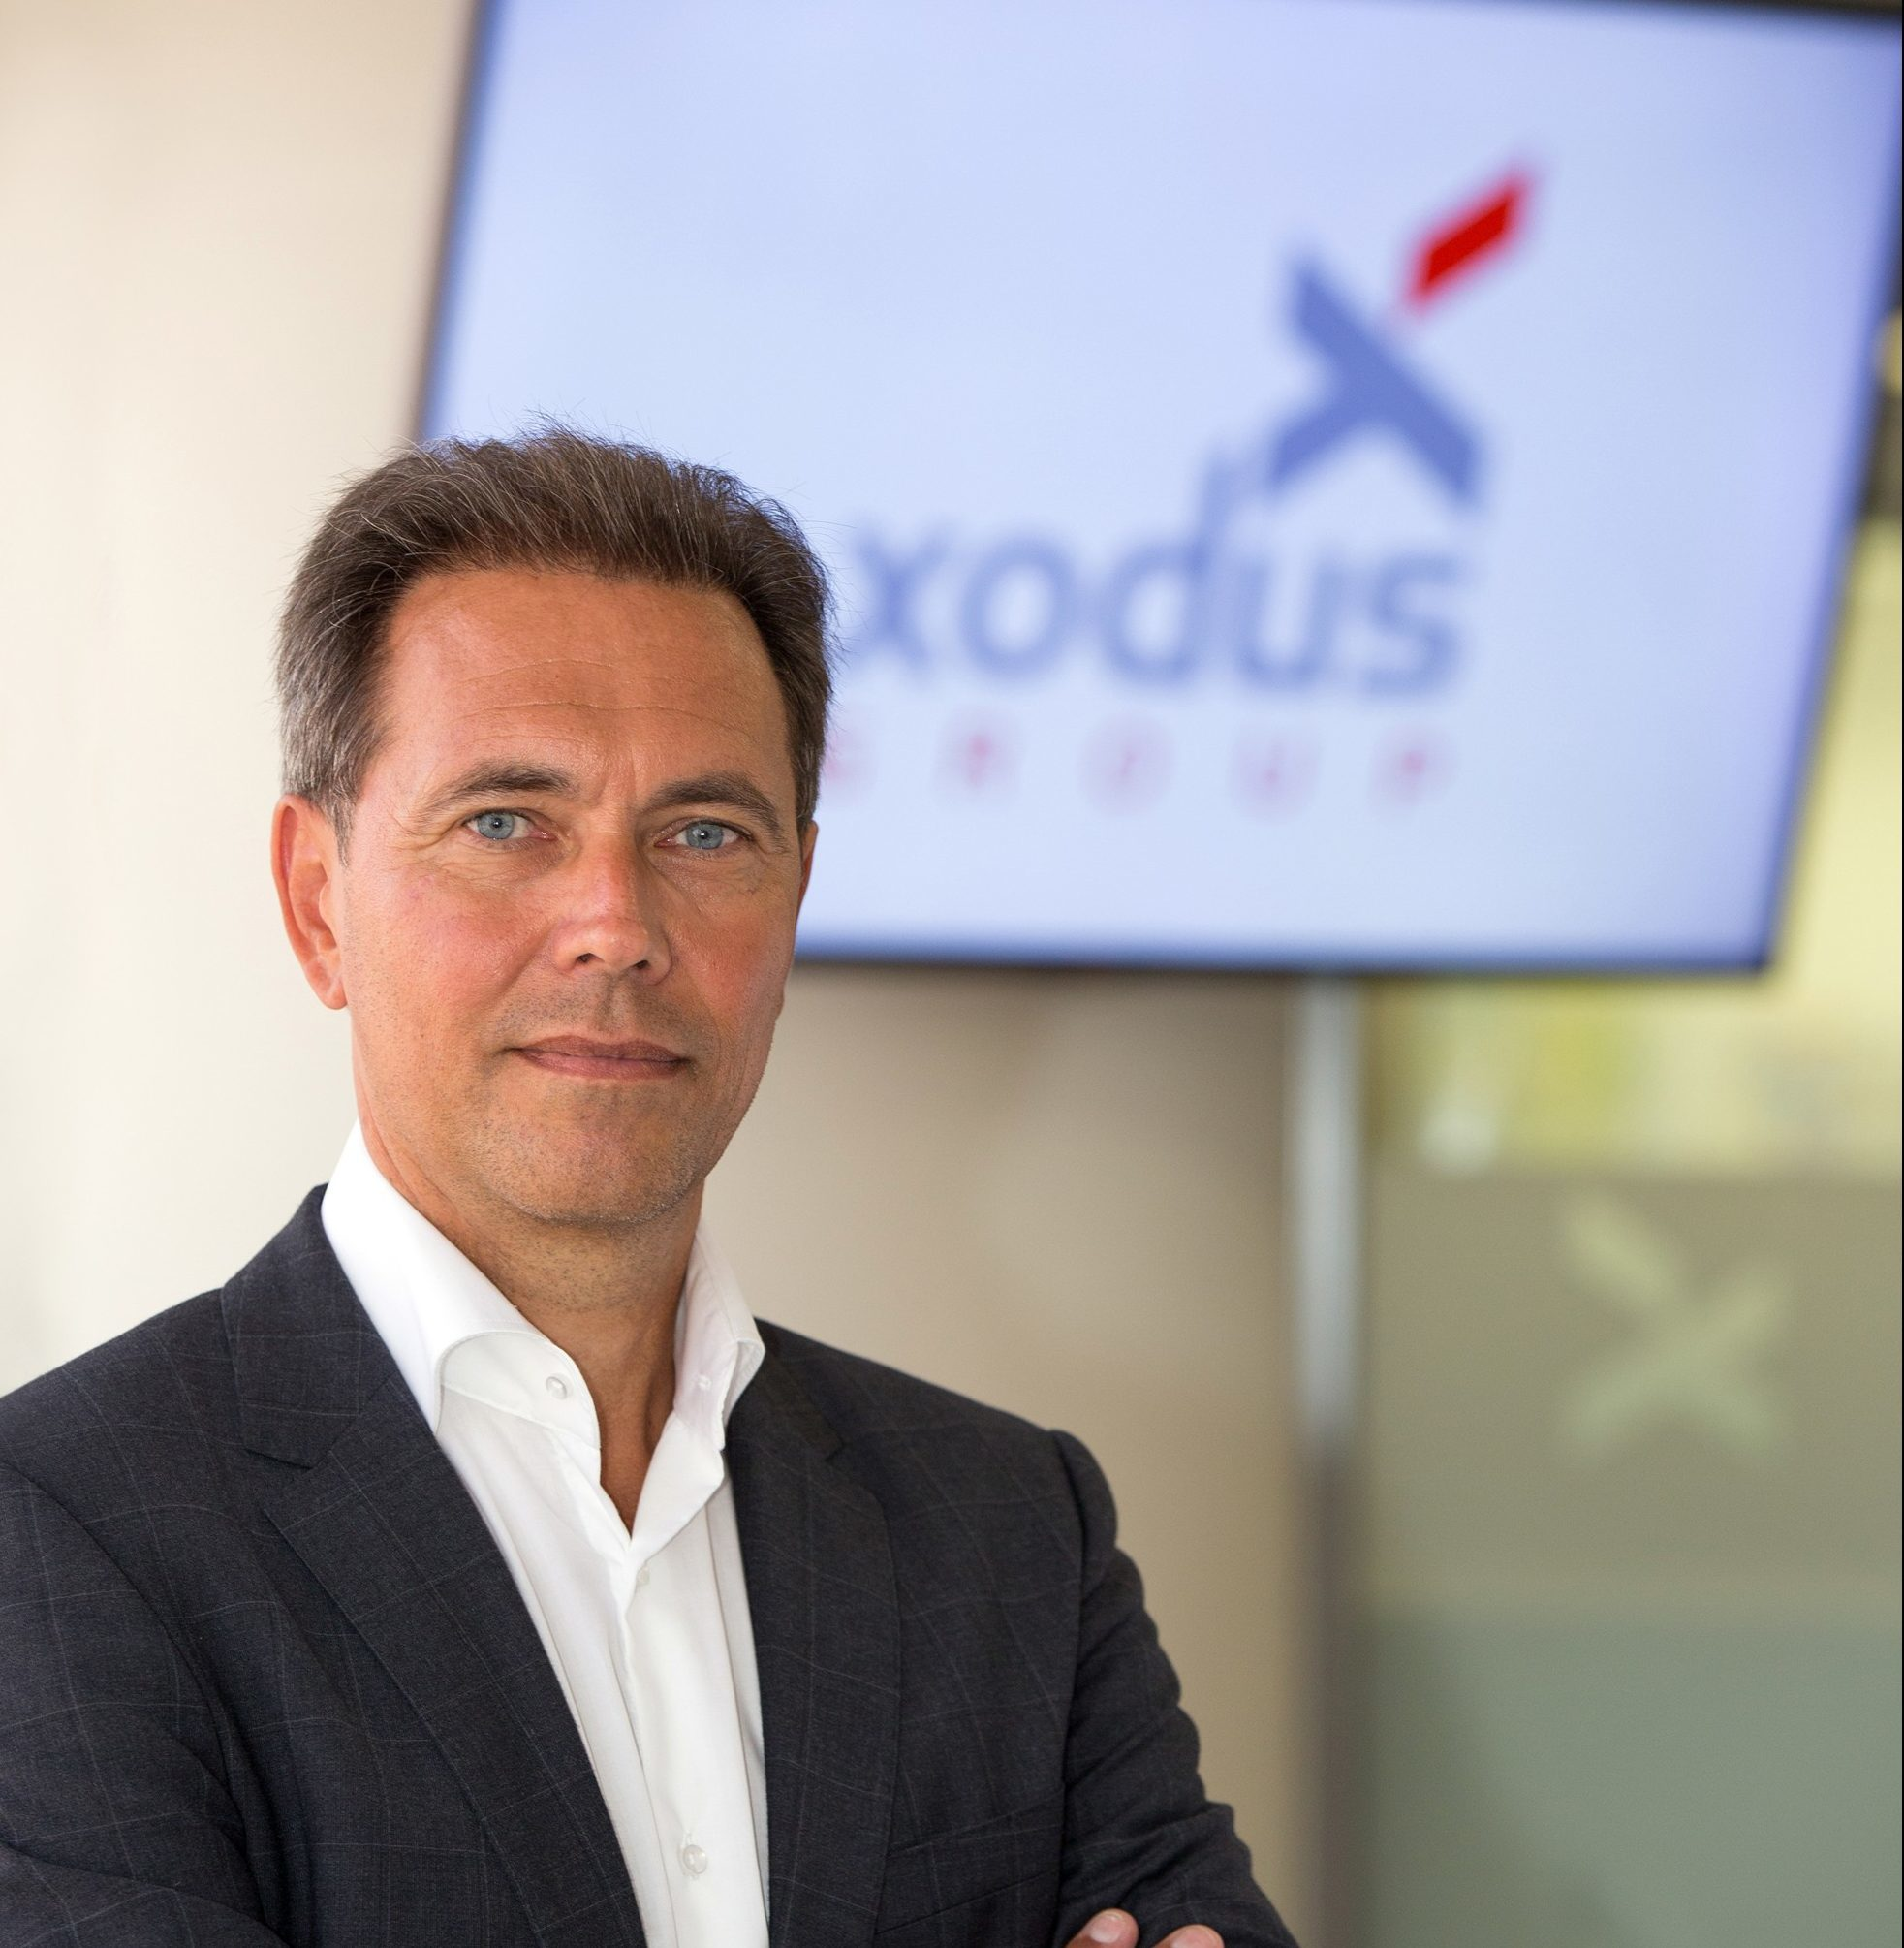 Xodus chief executive said Wim van der Zande